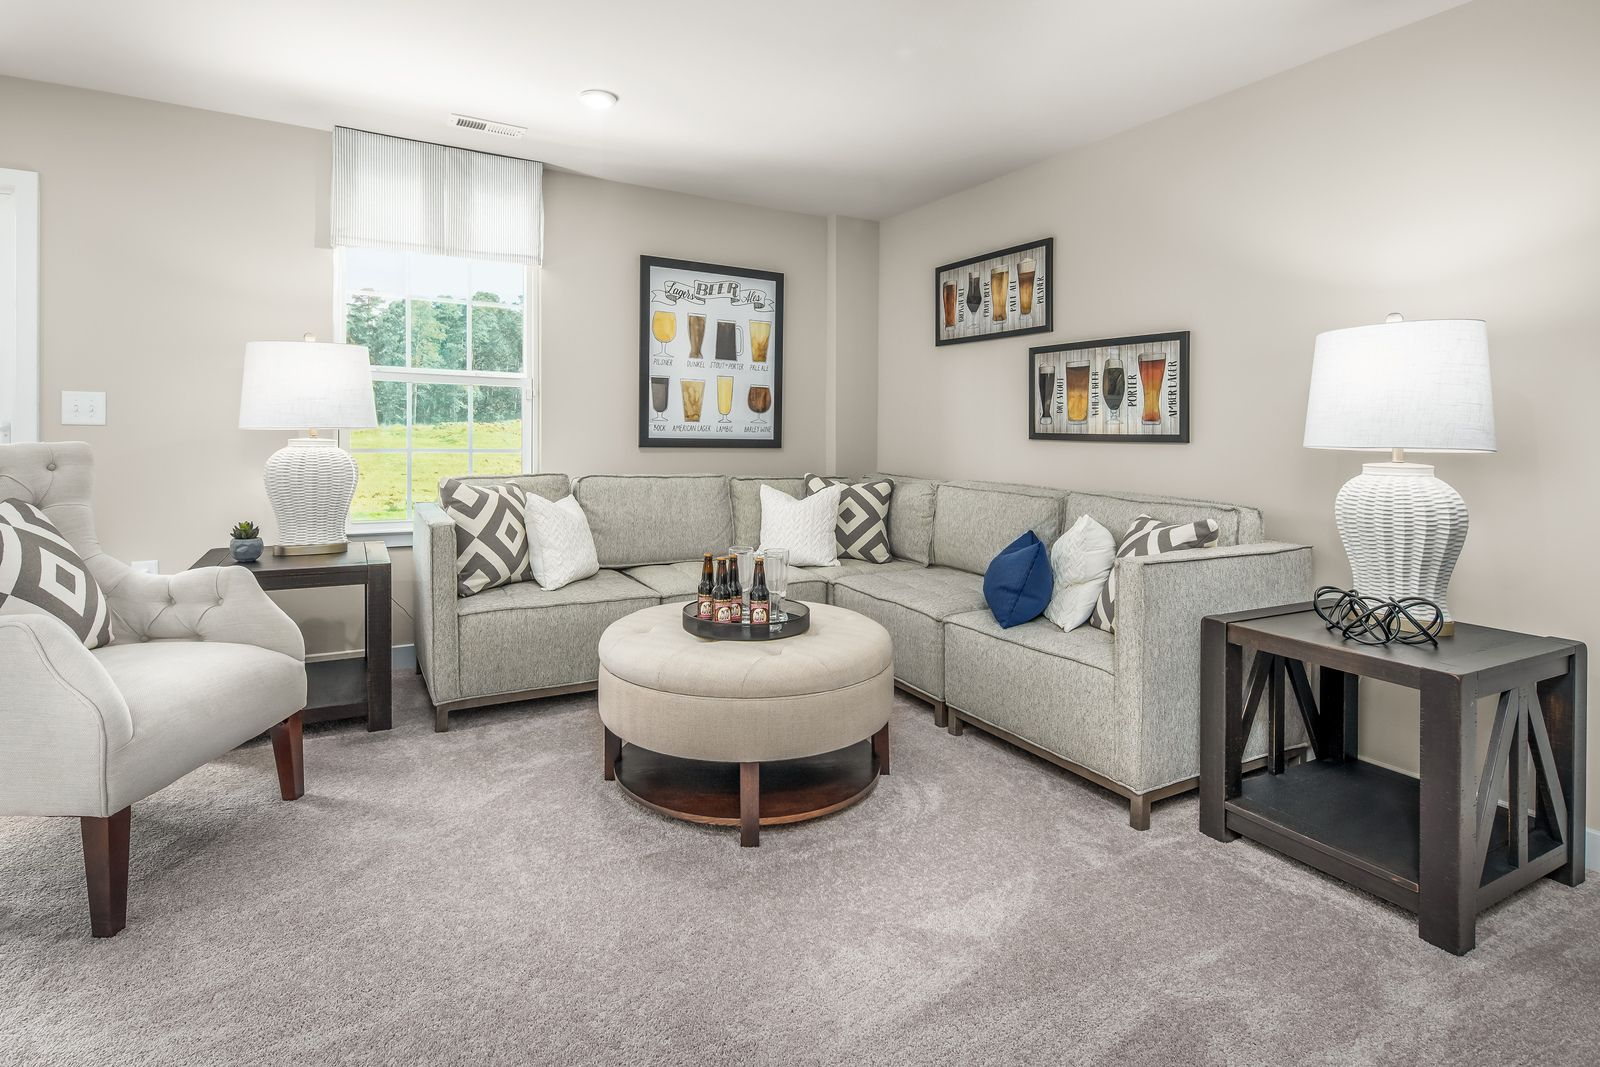 Living Area featured in the Mendelssohn Front Entry Garage By Ryan Homes